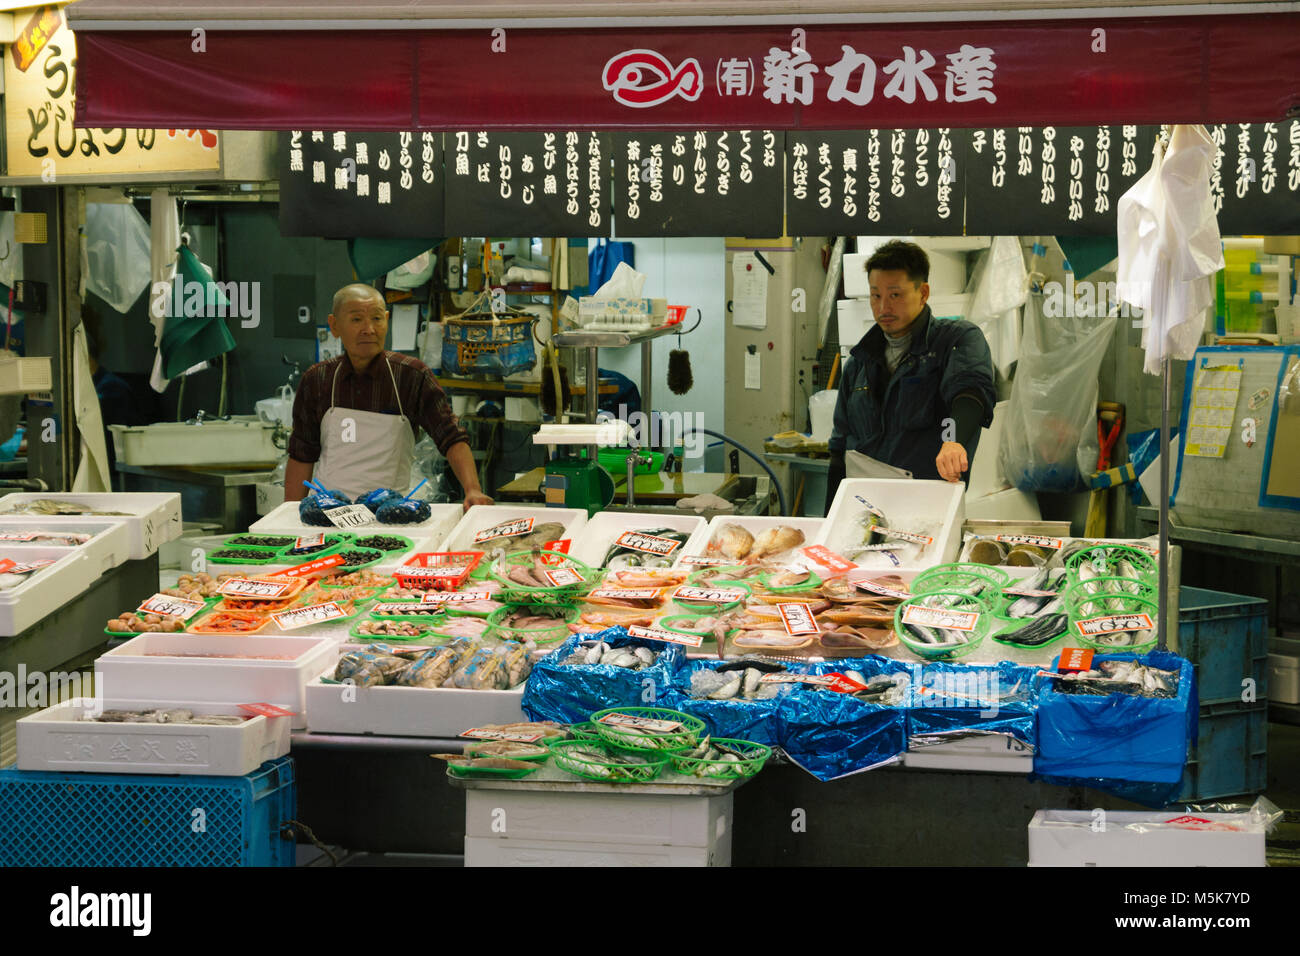 Japanese market with fresh fish and seafood on sale in the